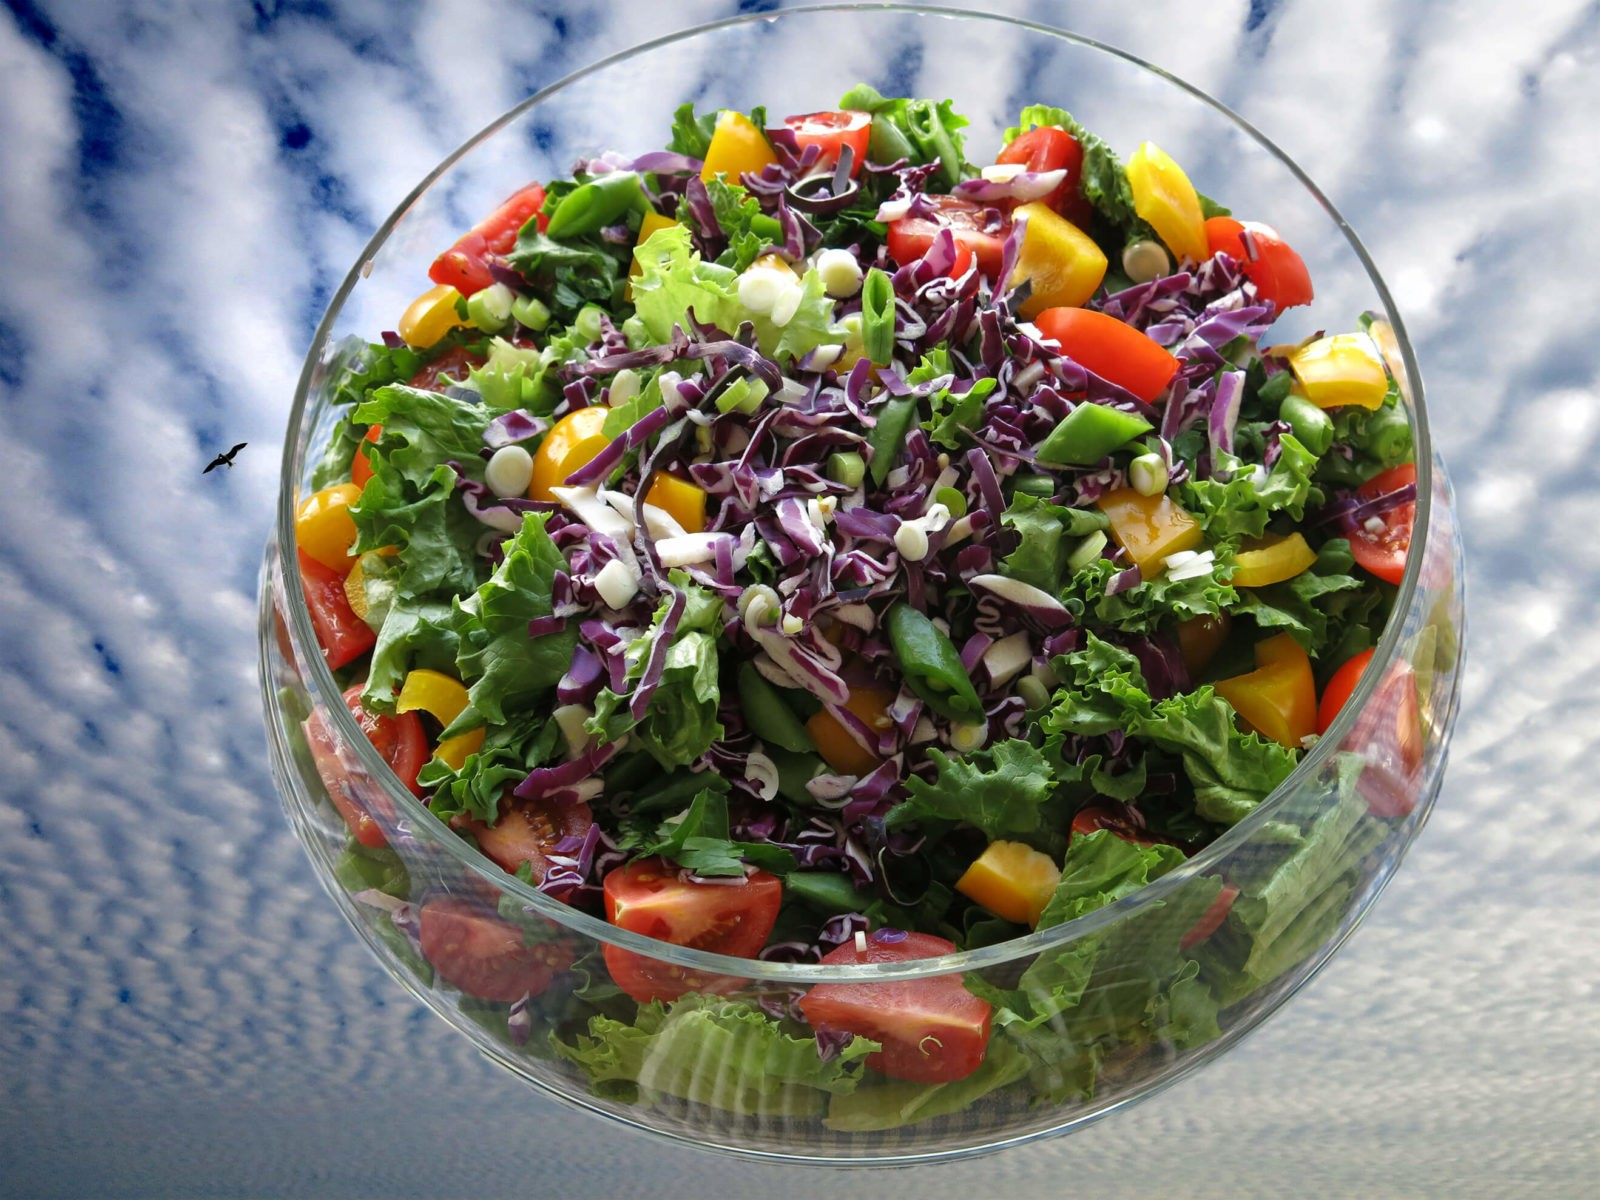 Robin Botie of Ithaca, New York, photoshops a salad that sings in the sky.